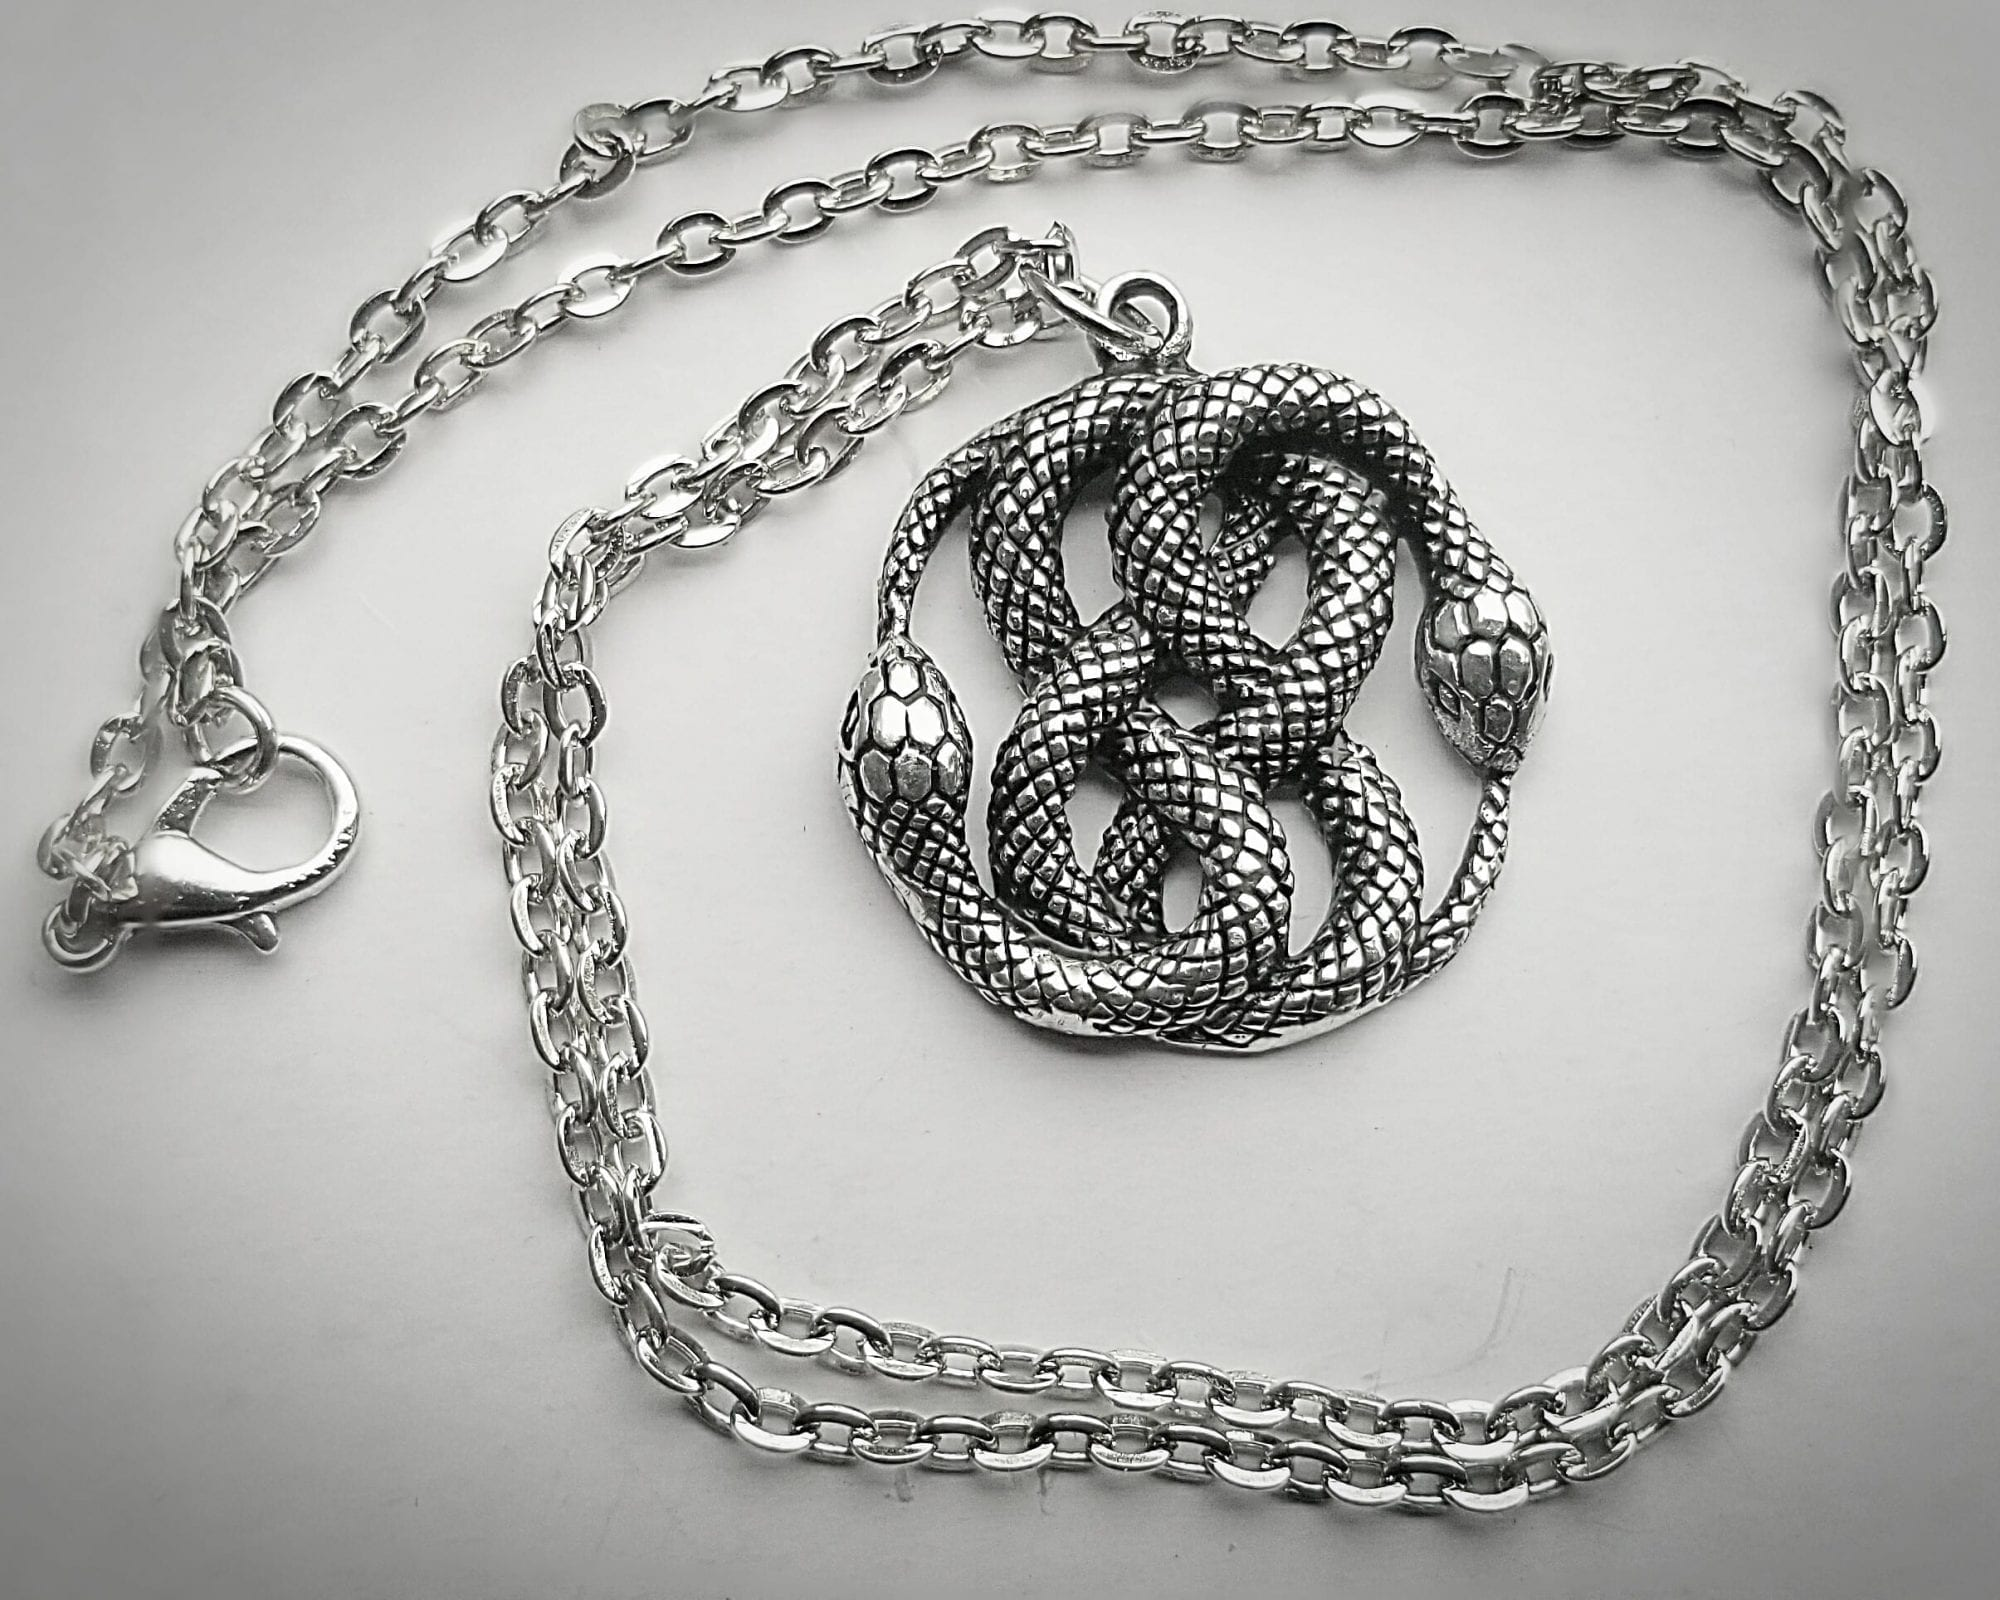 Ouroboros witchy necklace Snake necklace